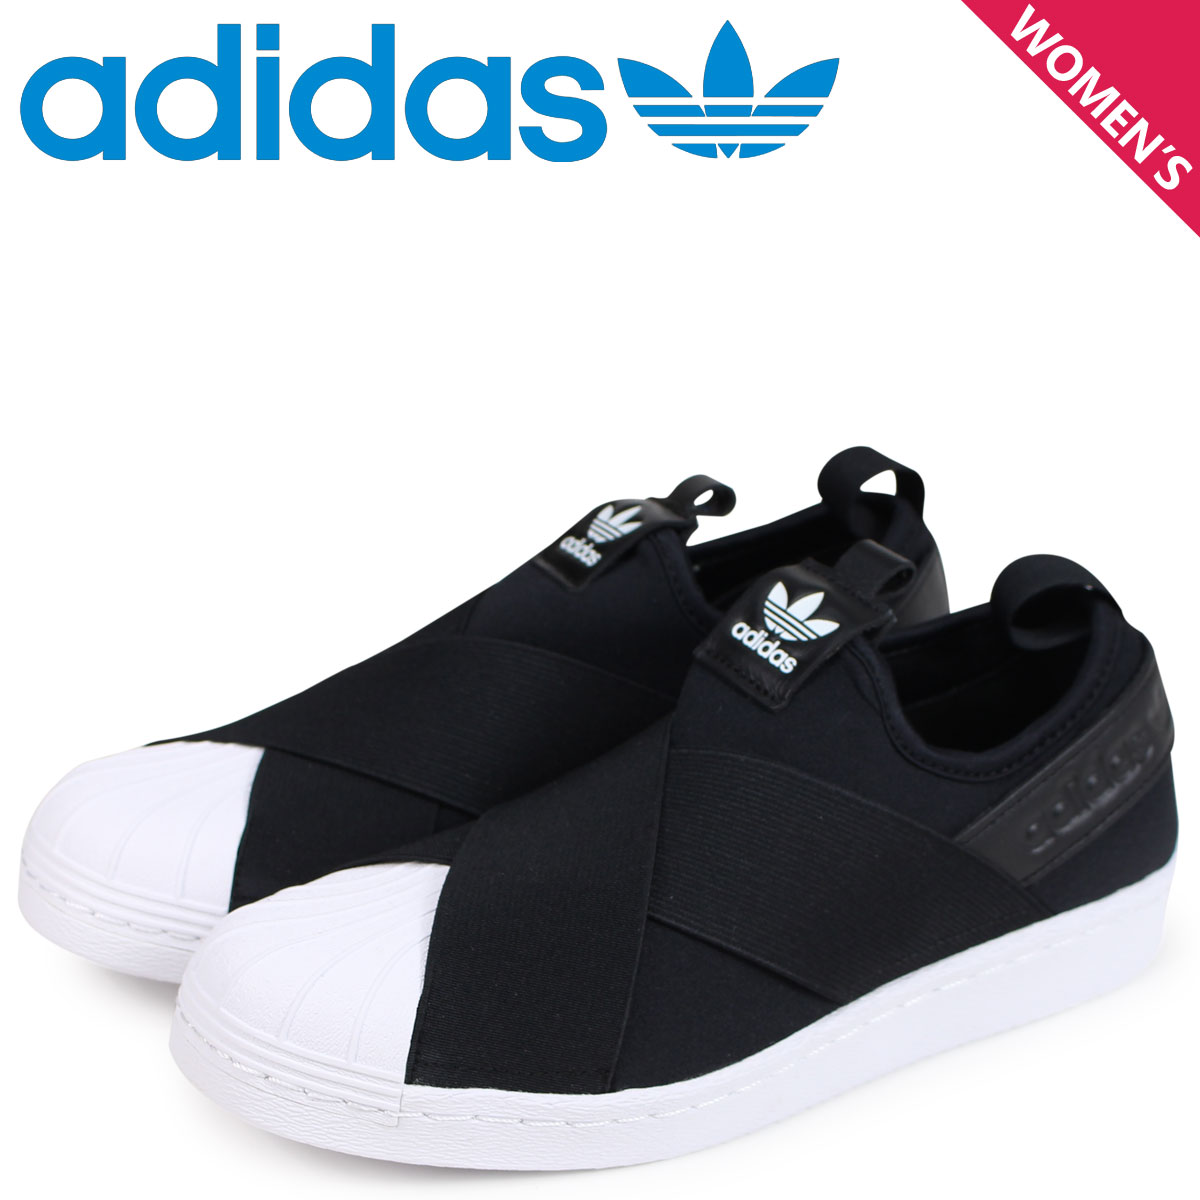 adidas Originals Adidas originals superstar sneakers slip-ons Lady s  SUPERSTAR SLIP-ON W black S81337  load planned Shinnyu load in reservation  product 1 25 ... b09db5afb